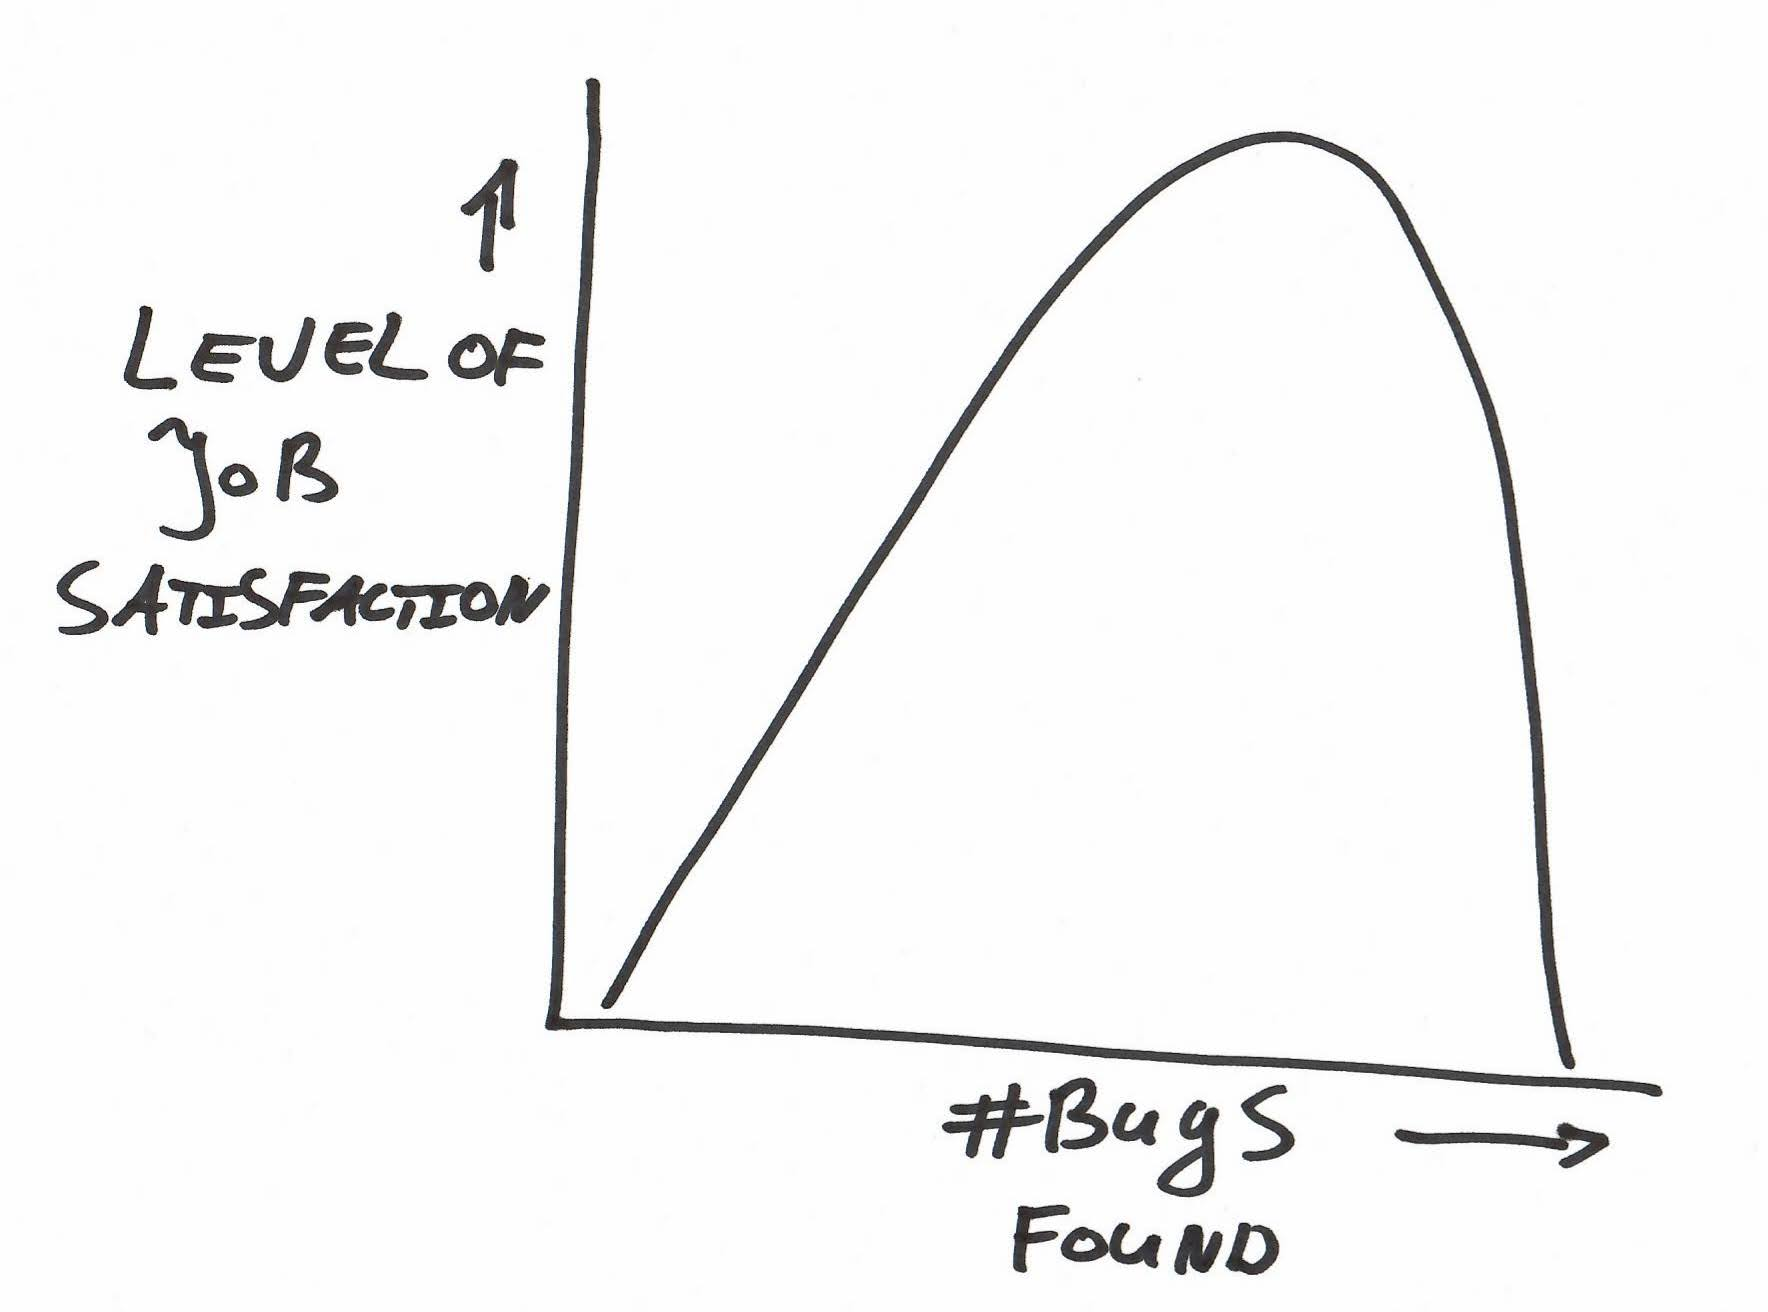 Graph of the tester's satisfaction curve